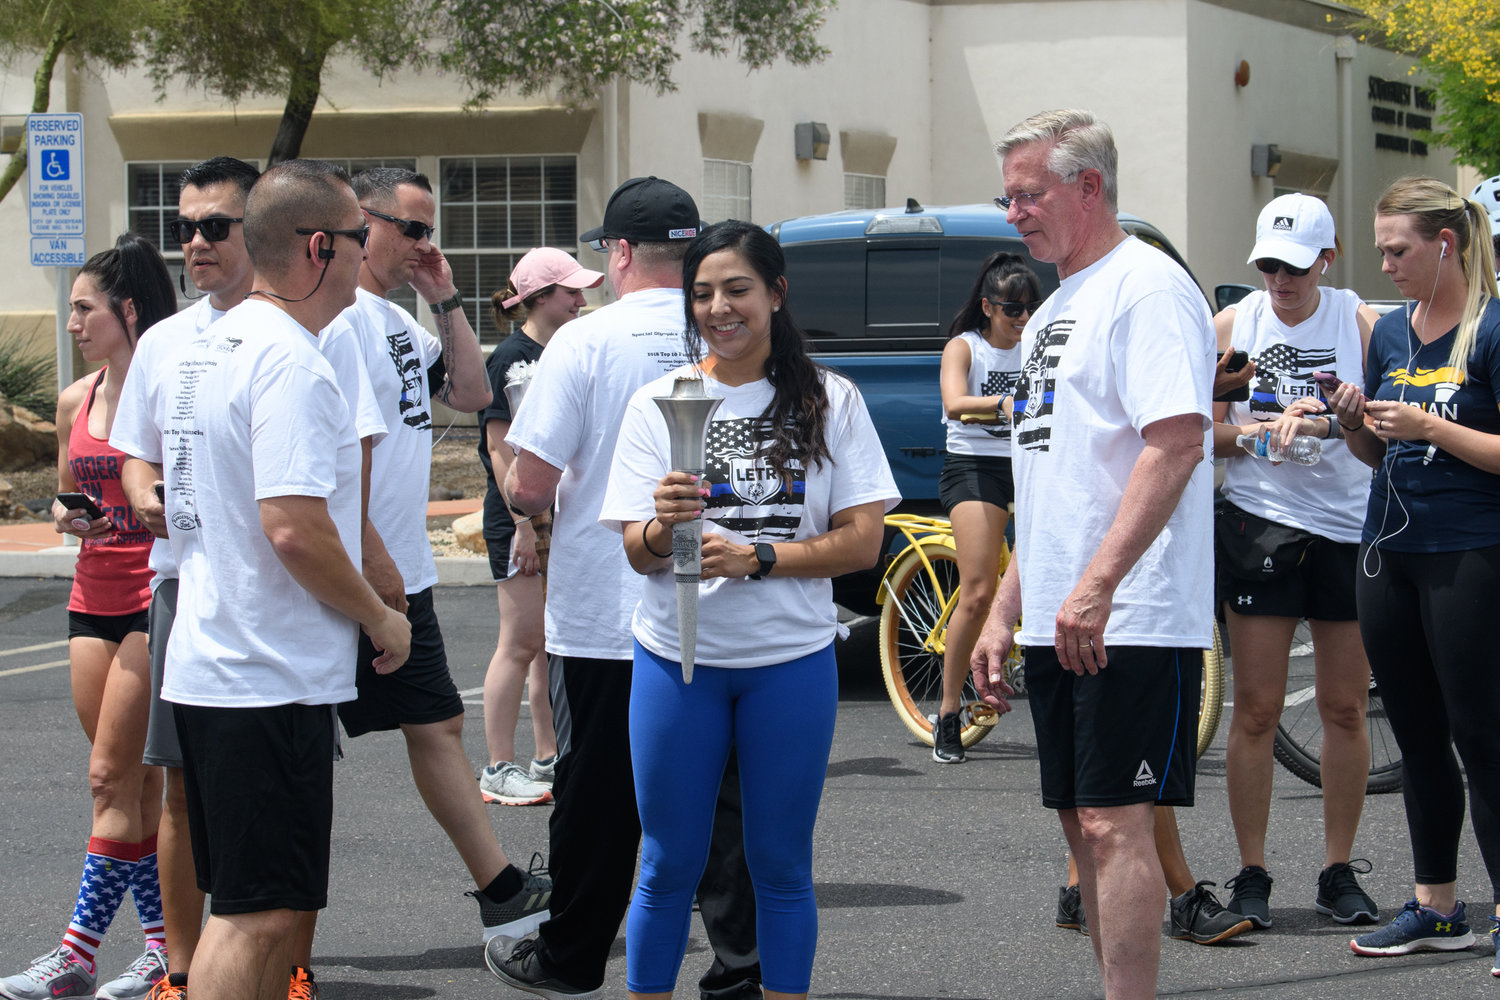 Detective Jenny Rubio holds the torch during APD's 2019 event. It was her idea to hold a virtual run when COVID-19 concerns canceled the 2020 event.